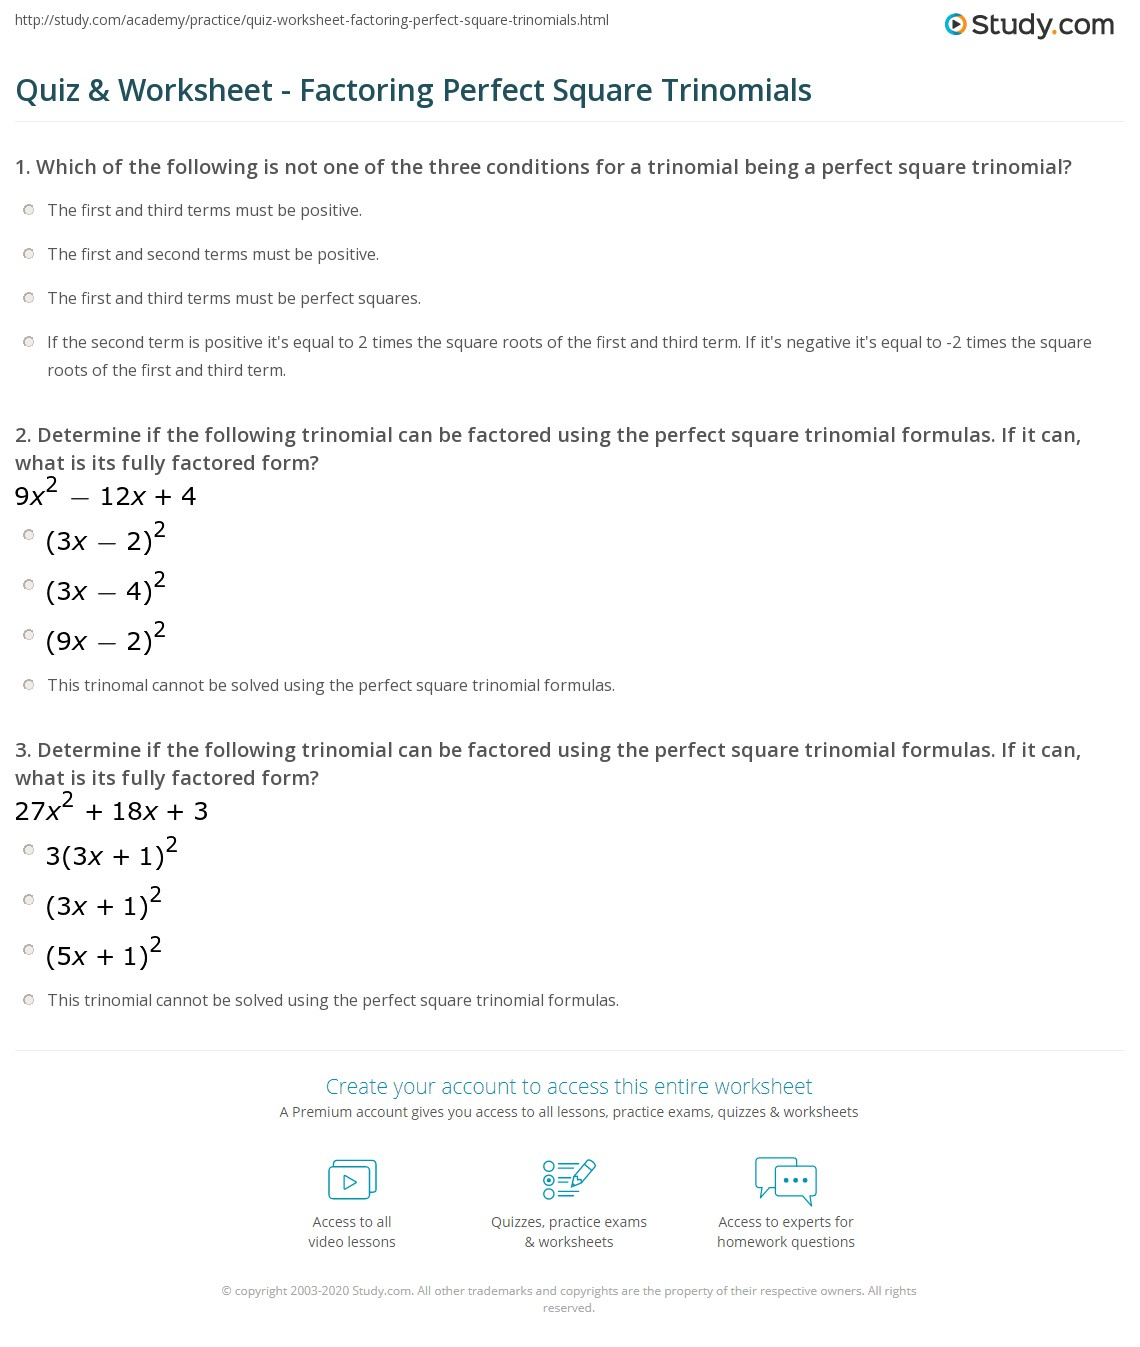 Worksheets Factoring Perfect Square Trinomials Worksheet quiz worksheet factoring perfect square trinomials study com print practice problems worksheet